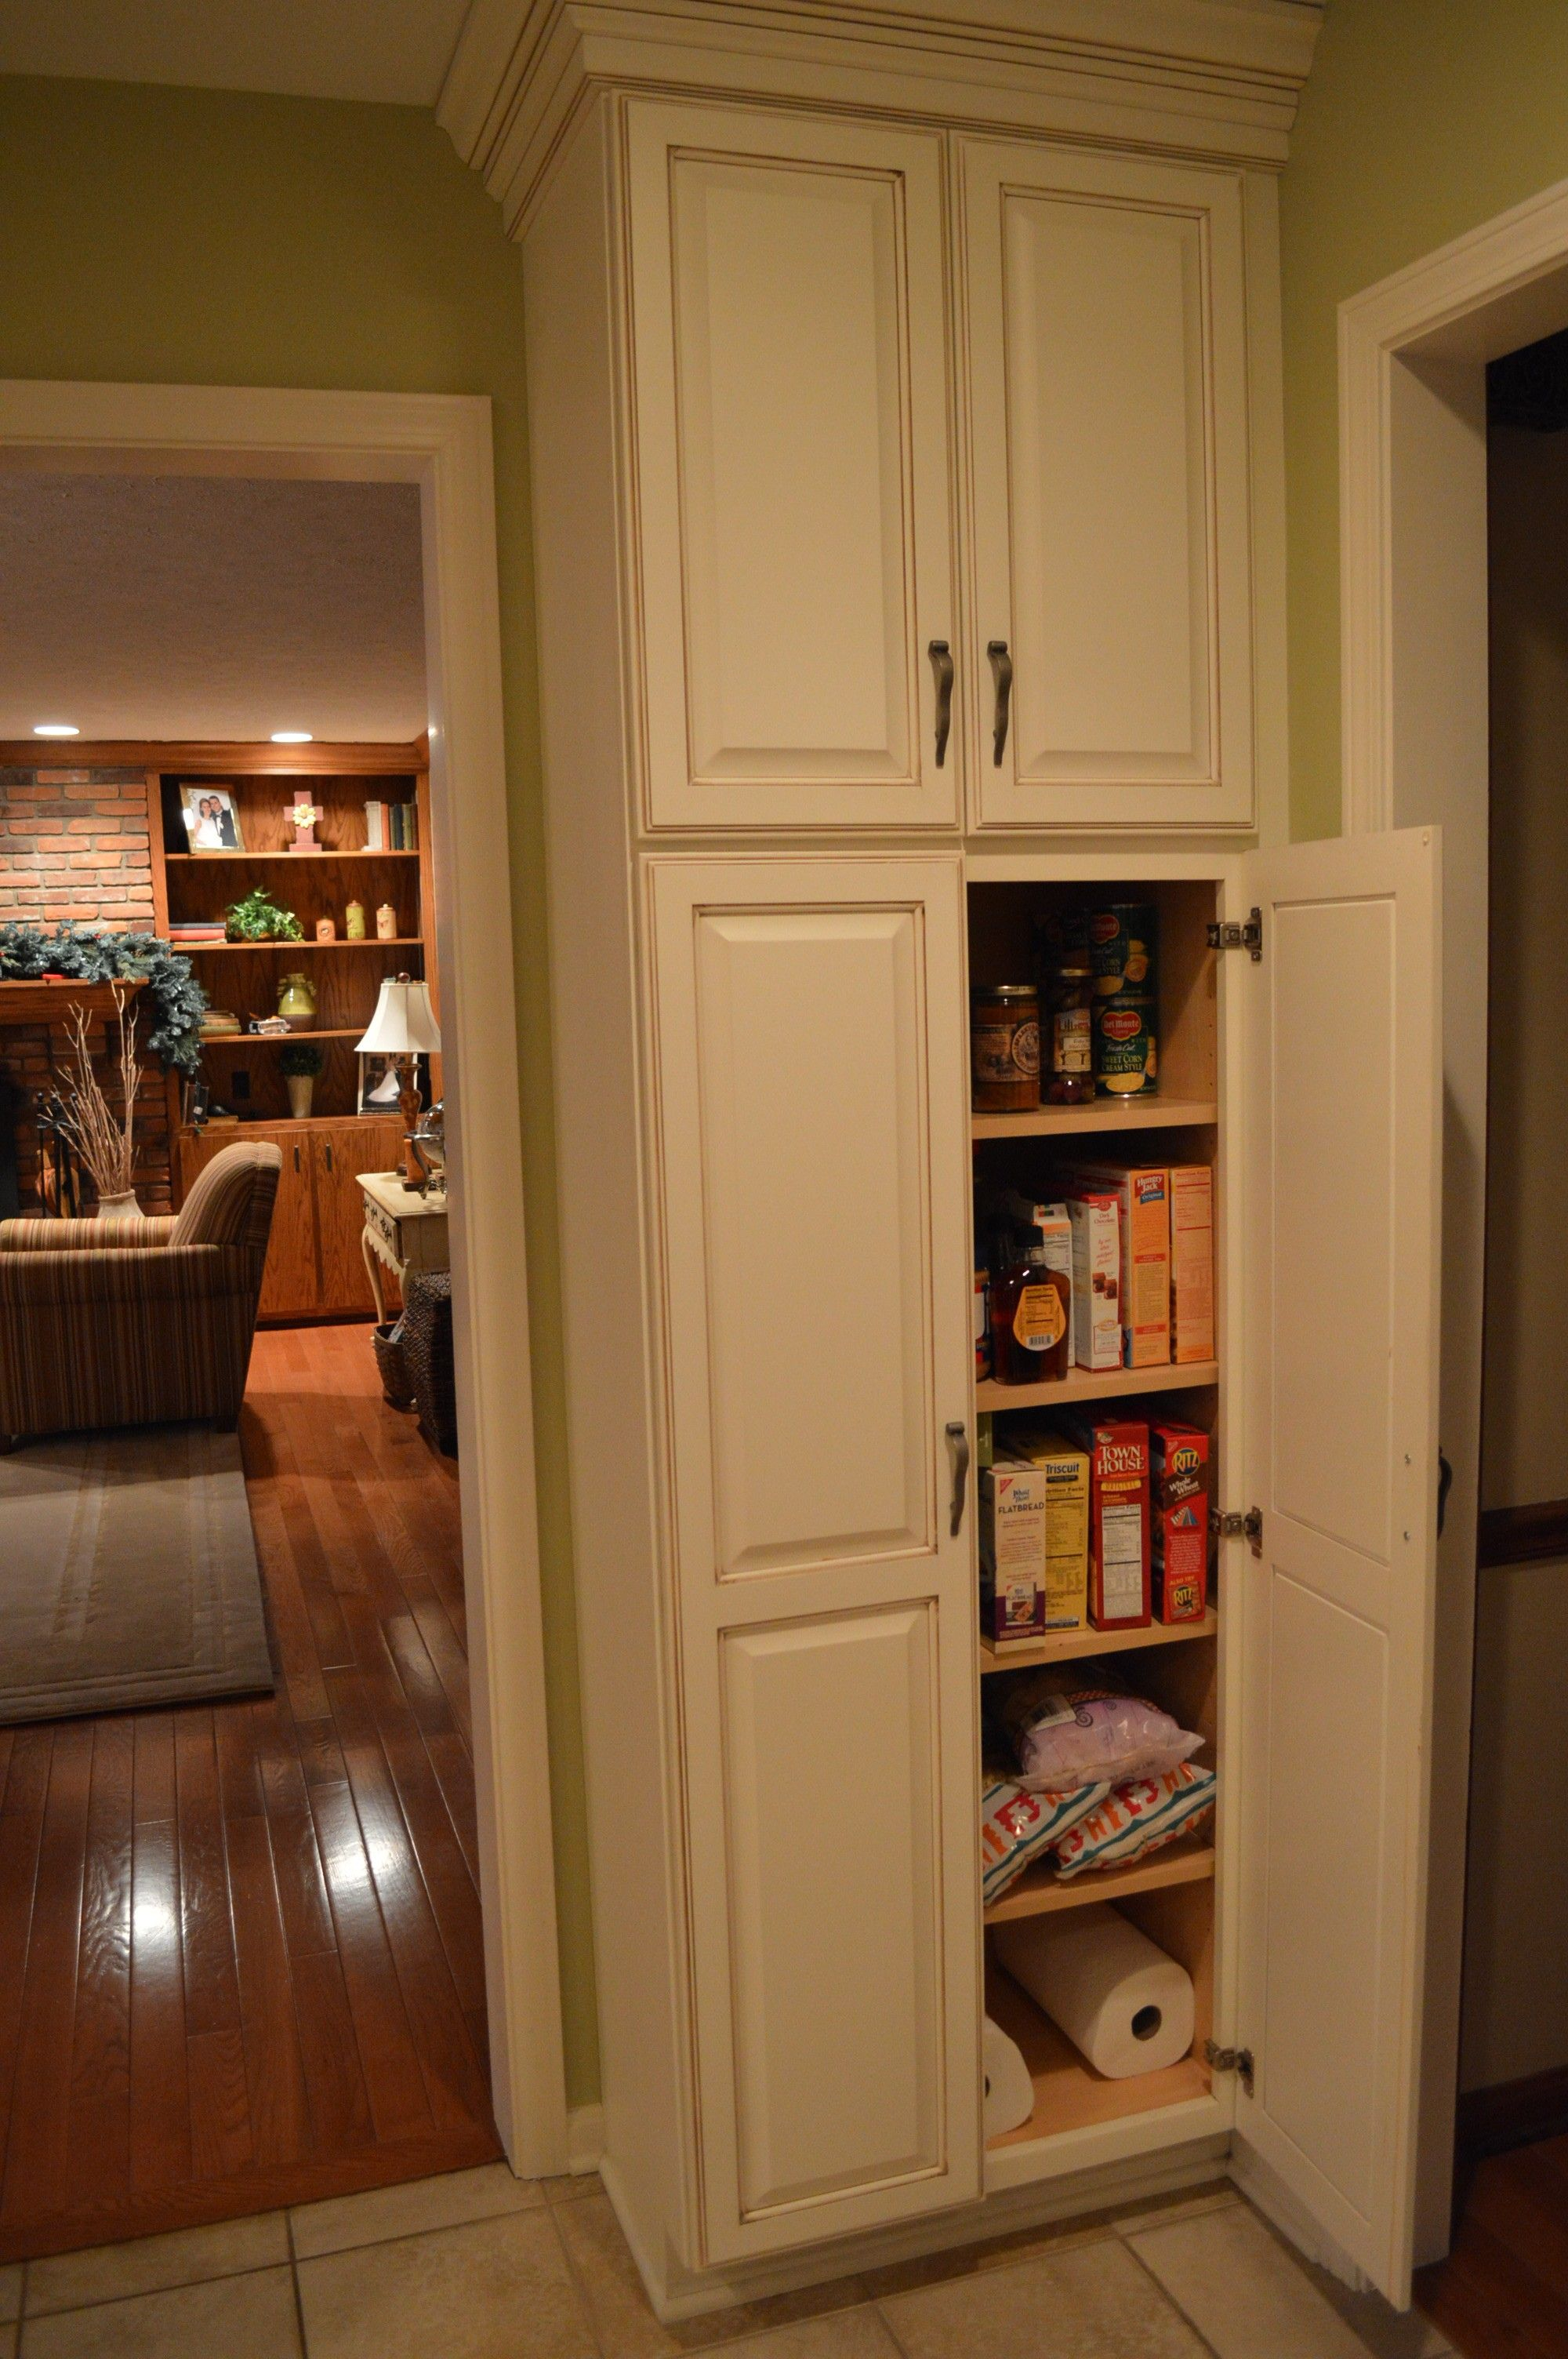 free standing kitchen pantry oyzwgw kitchens pinterest. beautiful ideas. Home Design Ideas